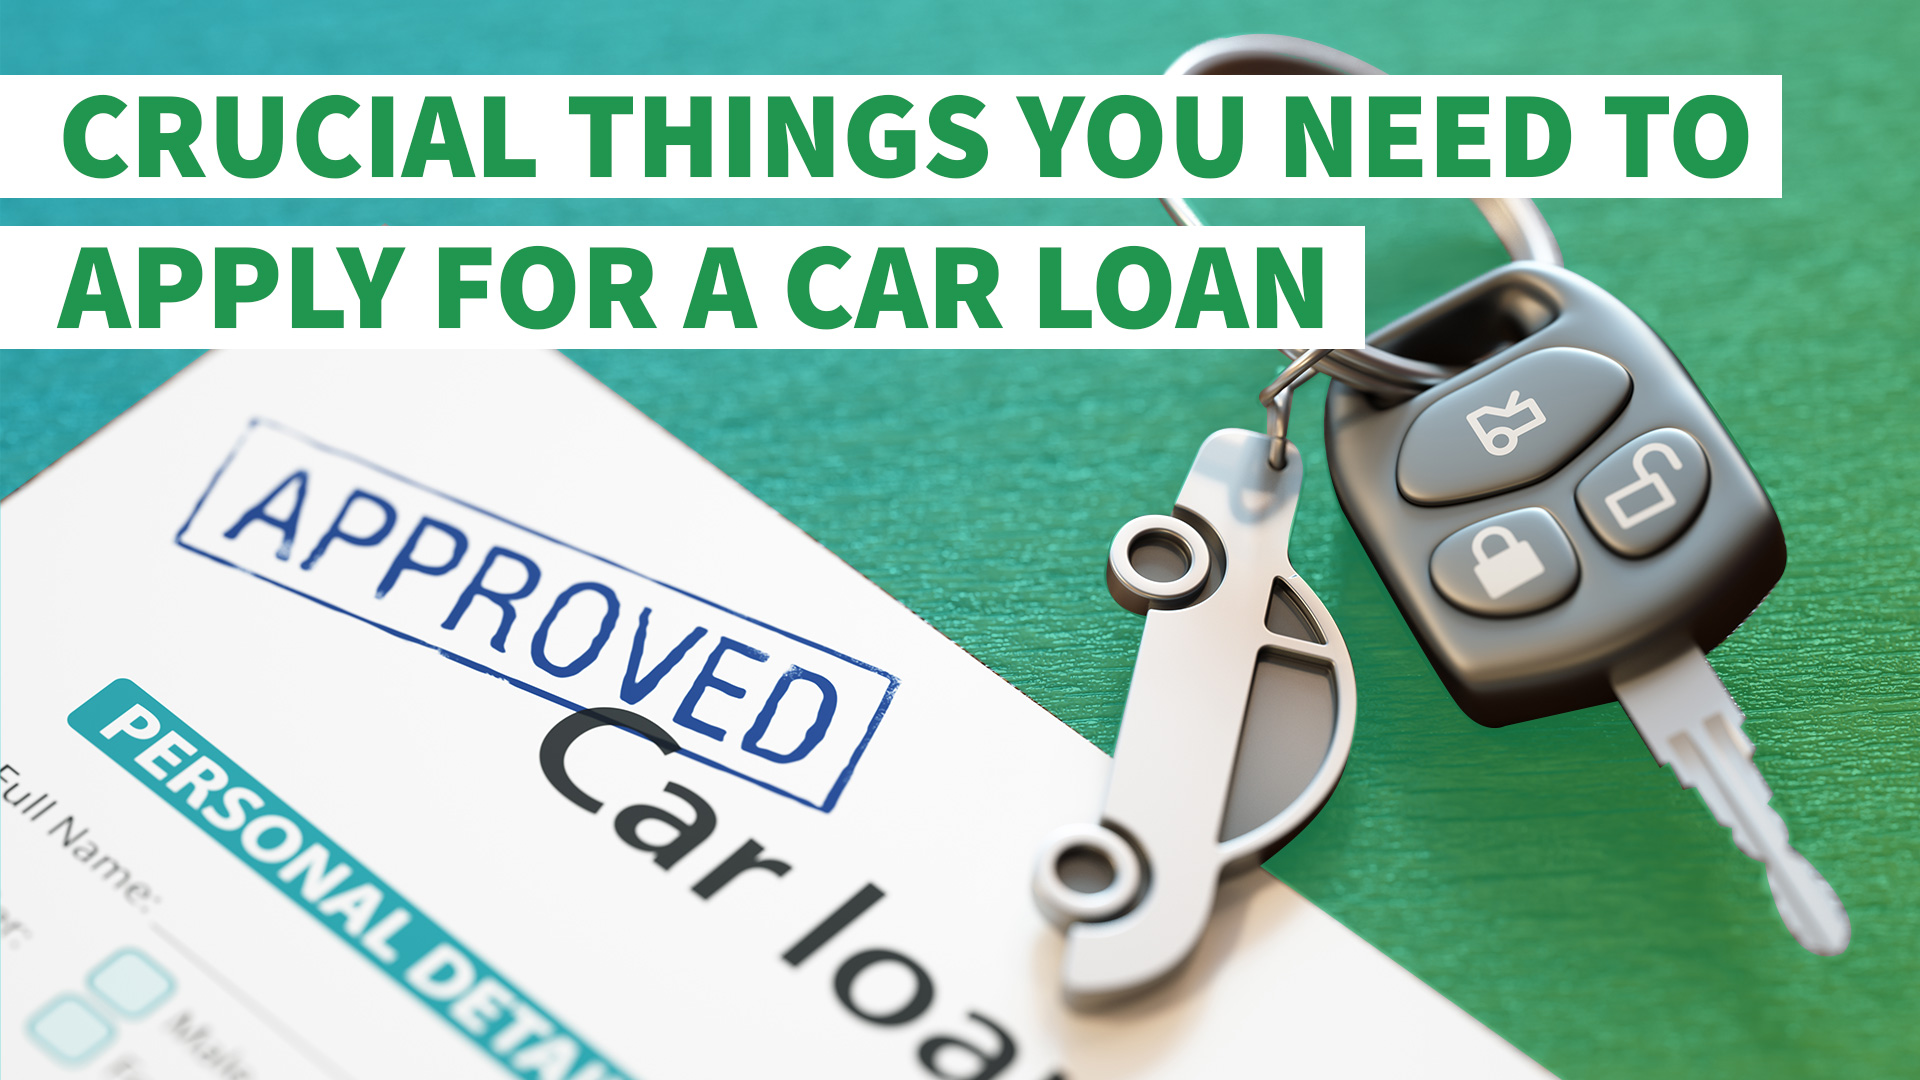 Green Light Auto Credit 2018 2019 New Car Reviews by